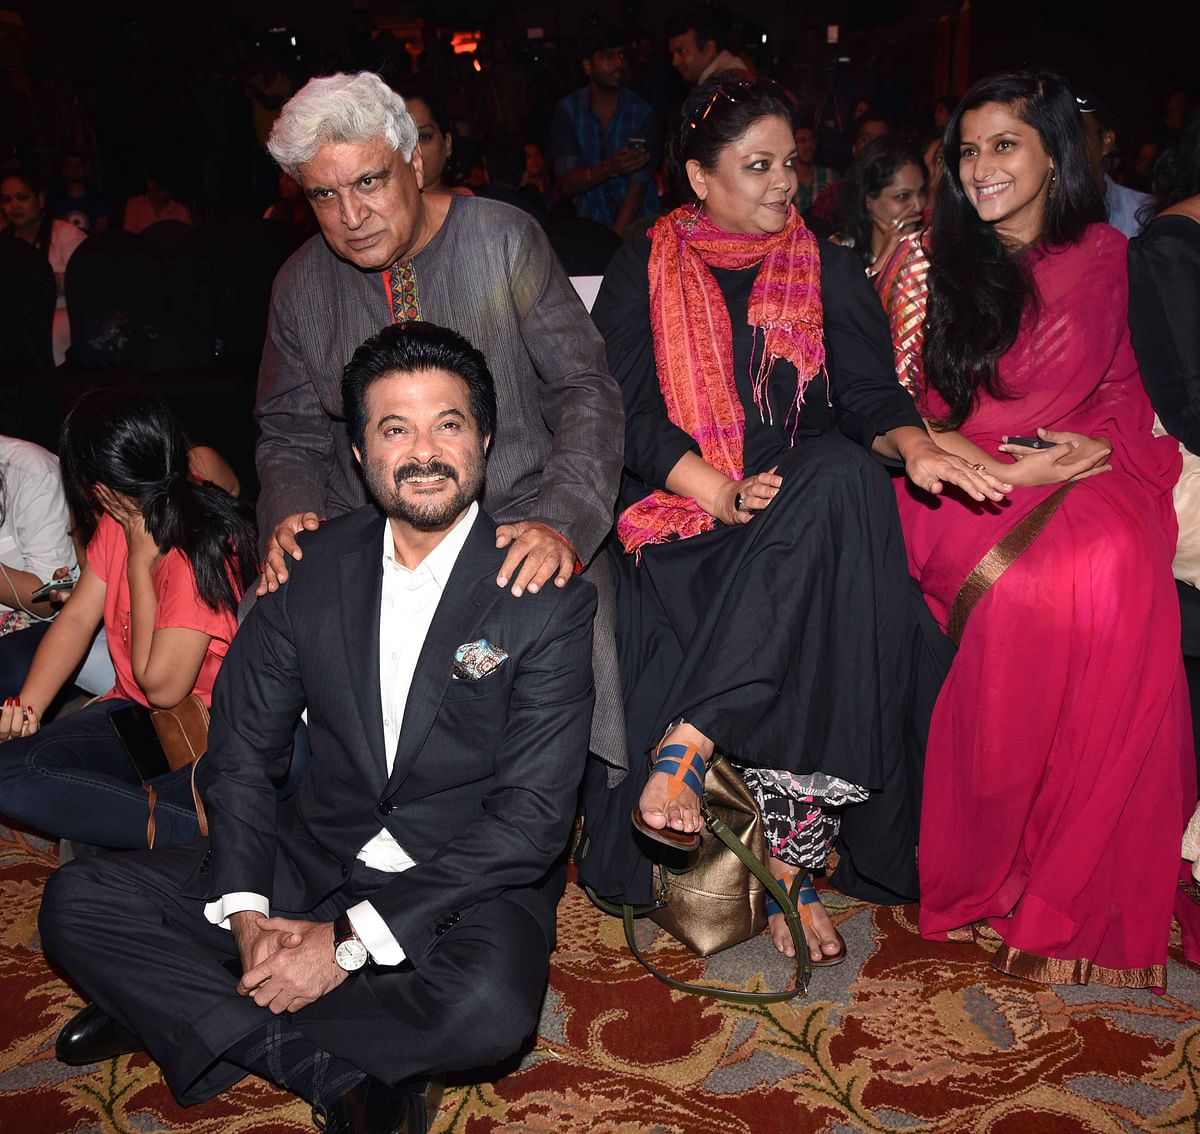 Saiyami Kher, the film's lead actress is Tanvi Azmi niece. Javed Akhtar posed for a picture with the proud Anil Kapoor. (Photo: Yogen Shah)